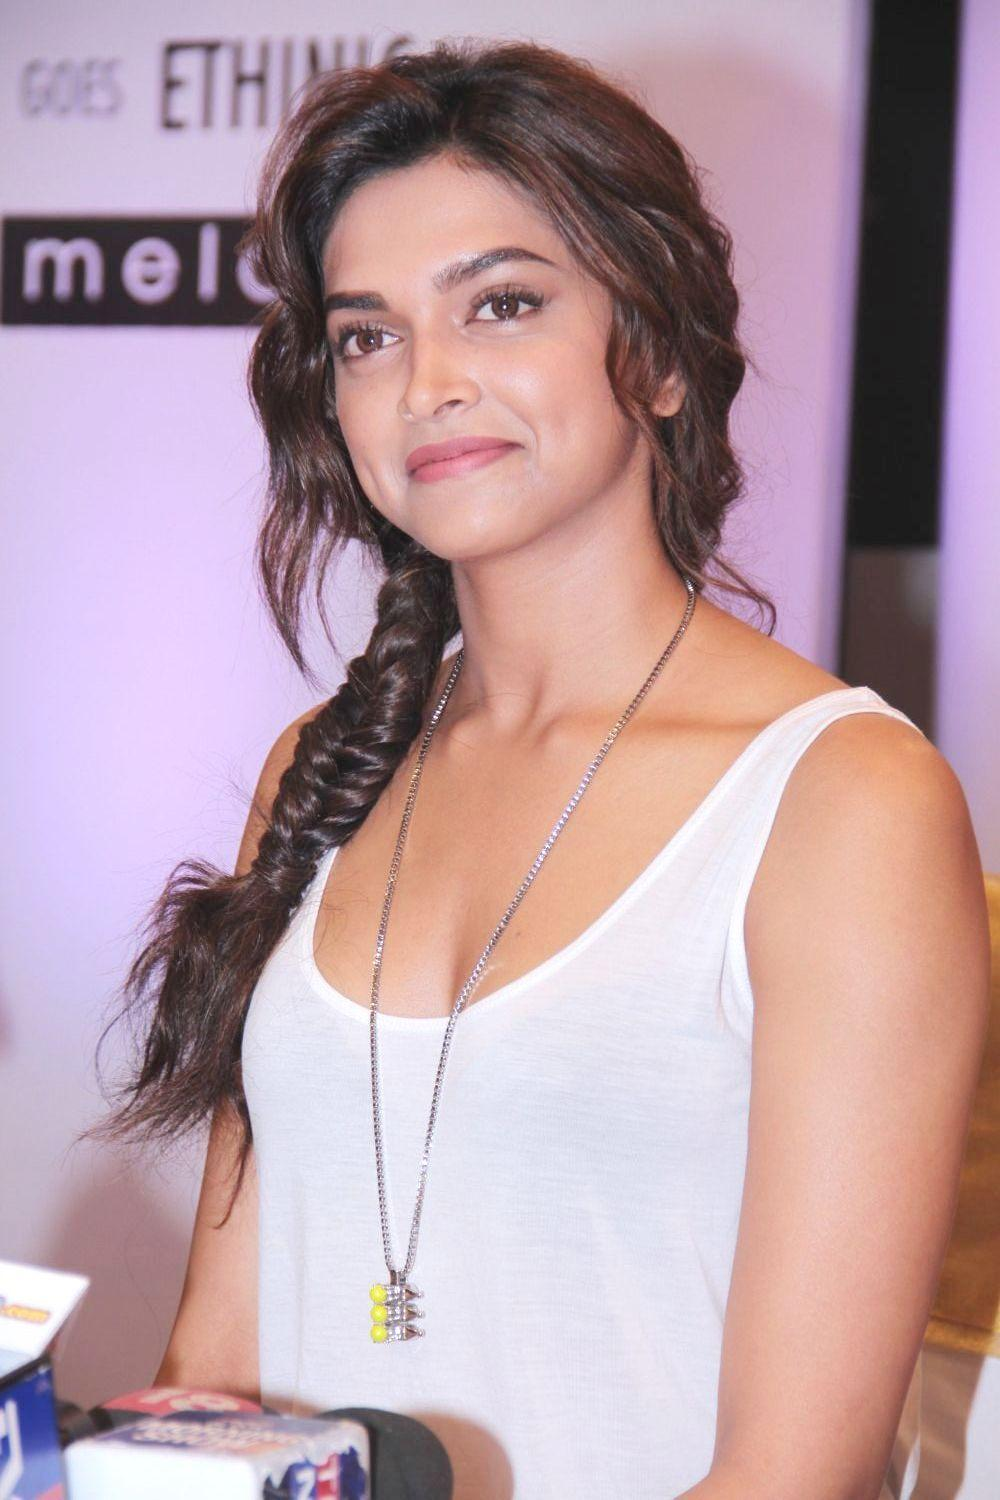 Deepika Padukone Latest Smiling Photos In White Top Red Jeans